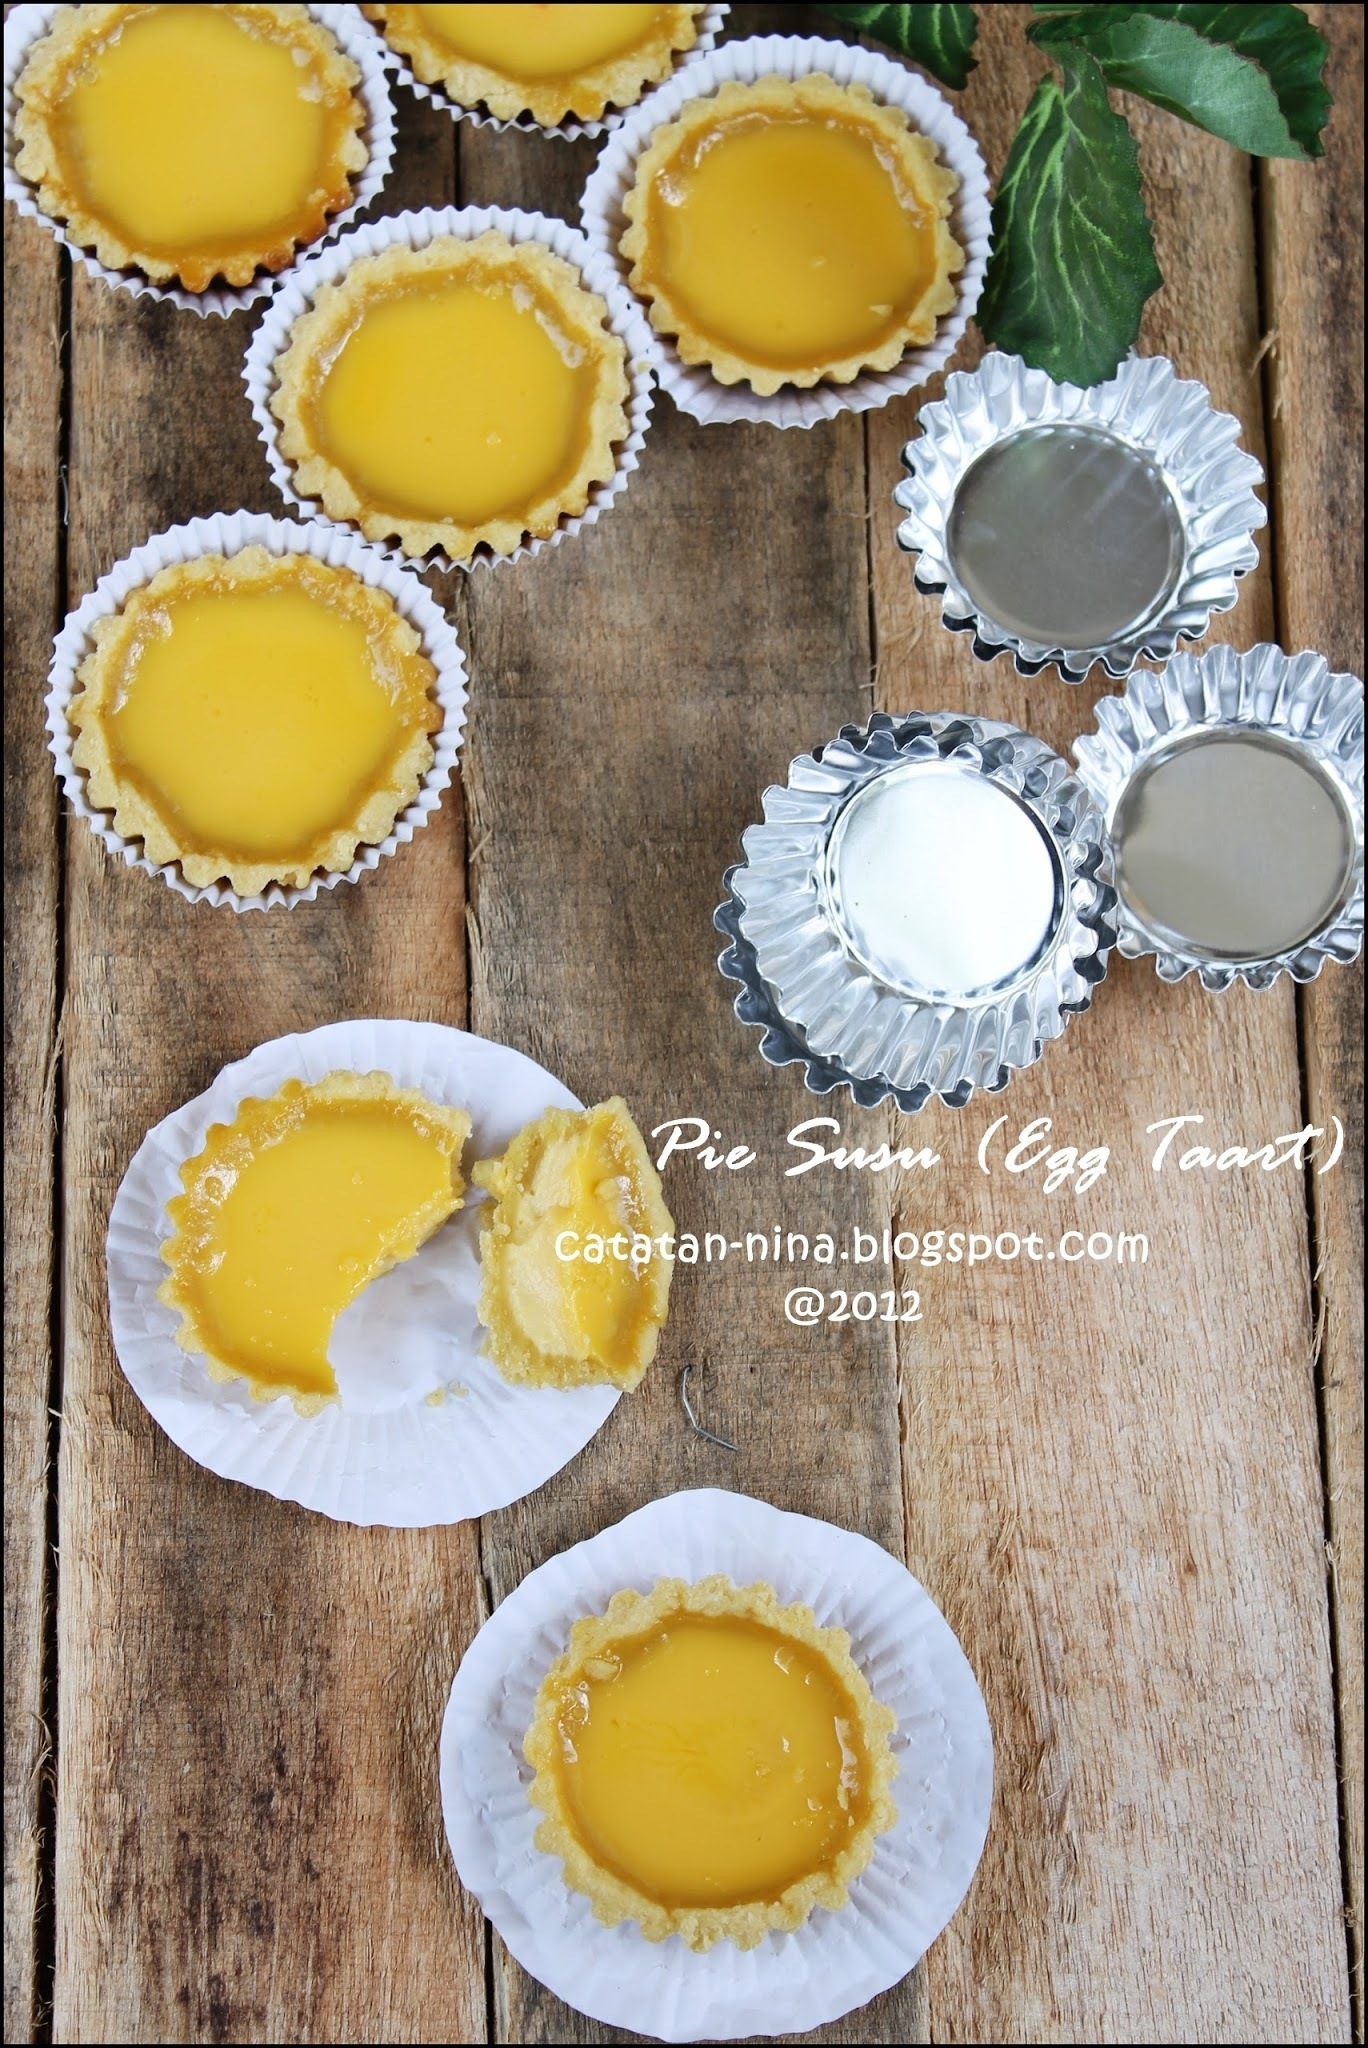 PIE SUSU (EGG TART)